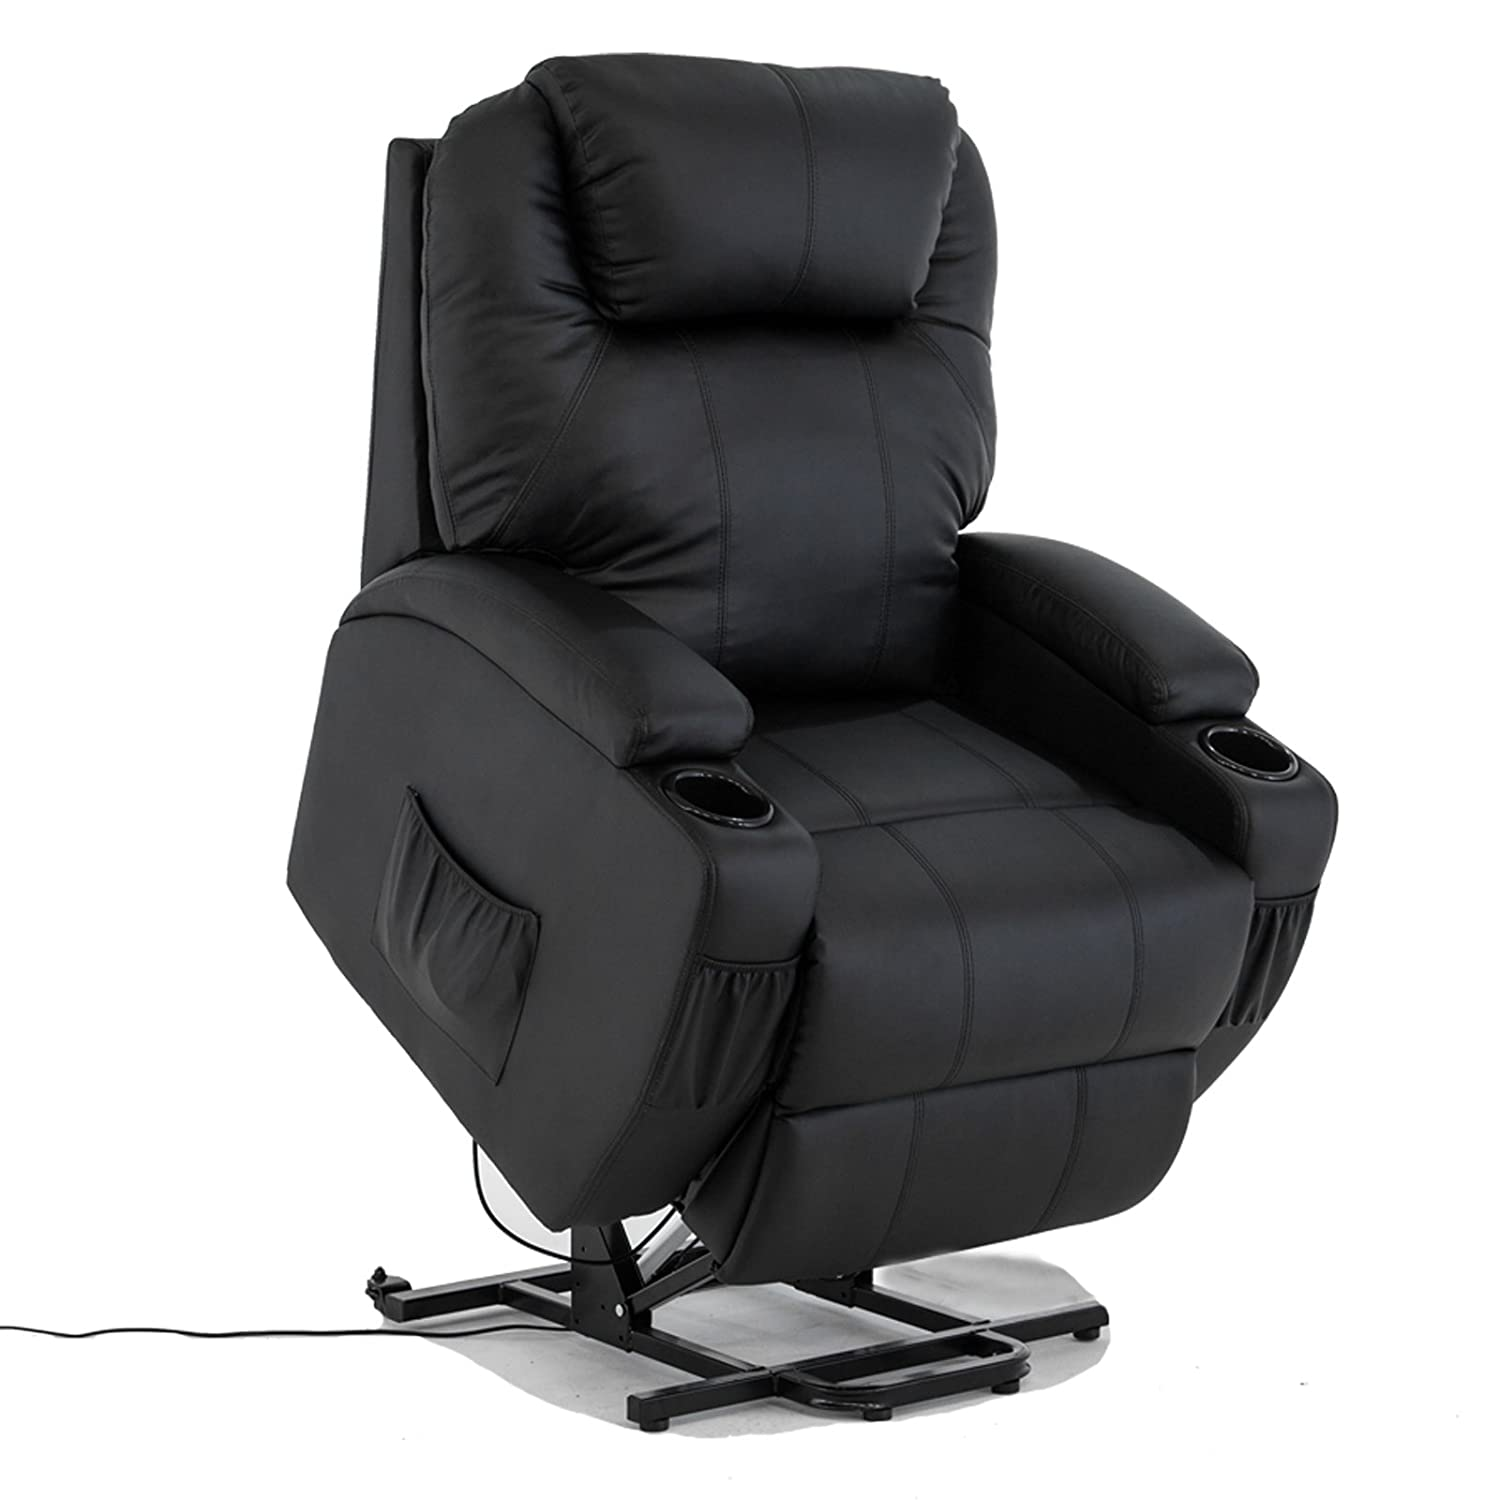 overstock today oliver leather chair garden james shipping black modern product free home vindicator